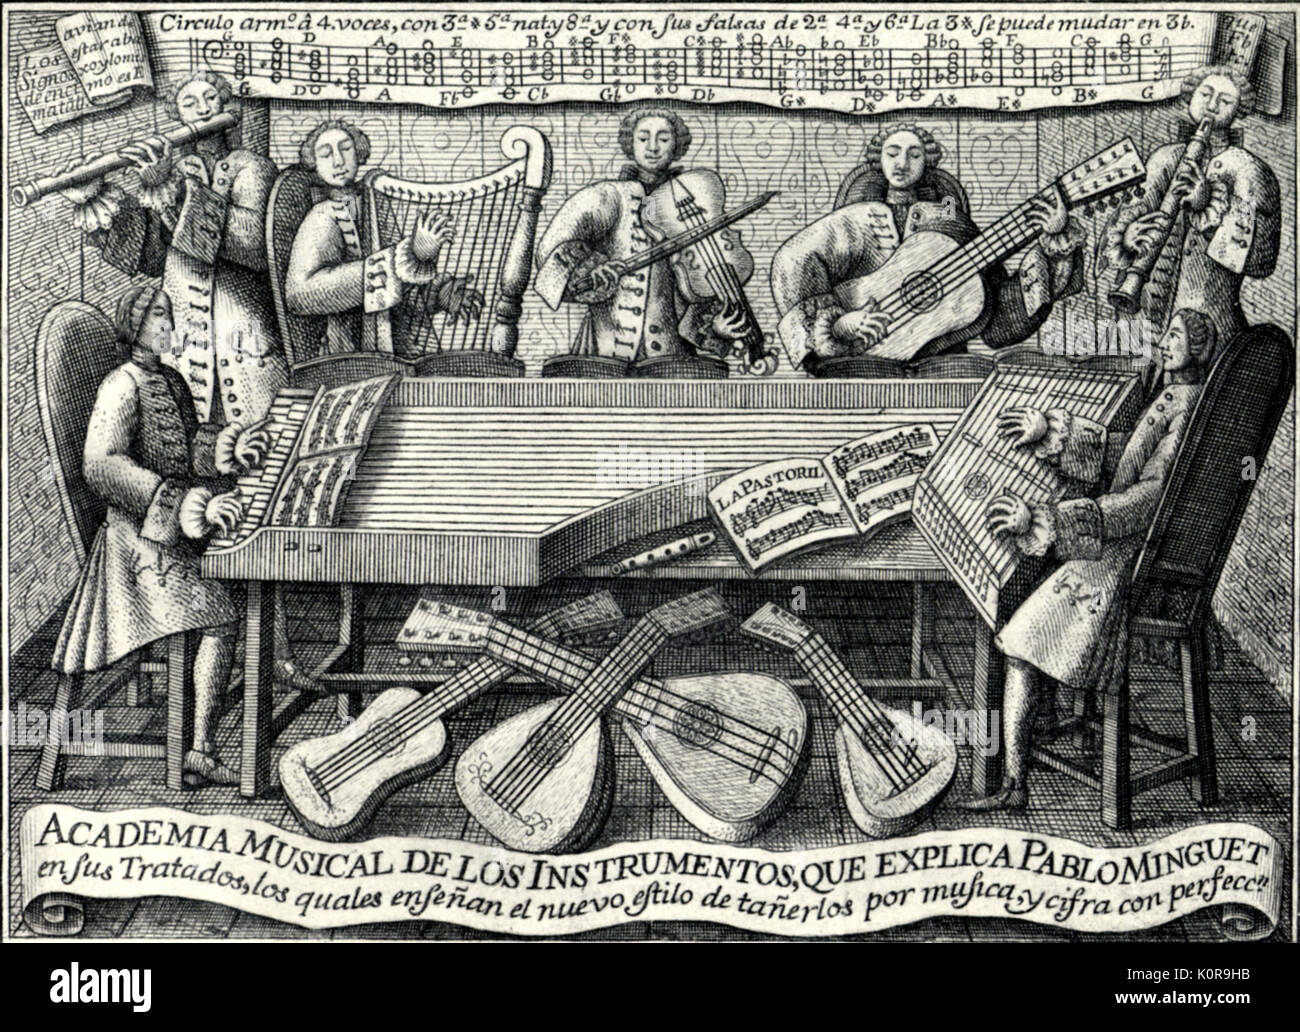 Spanish musical treatise cover, 1752. 'Rules and Advice for the Playing of All the Best Musical Instruments' - treatise Stock Photo